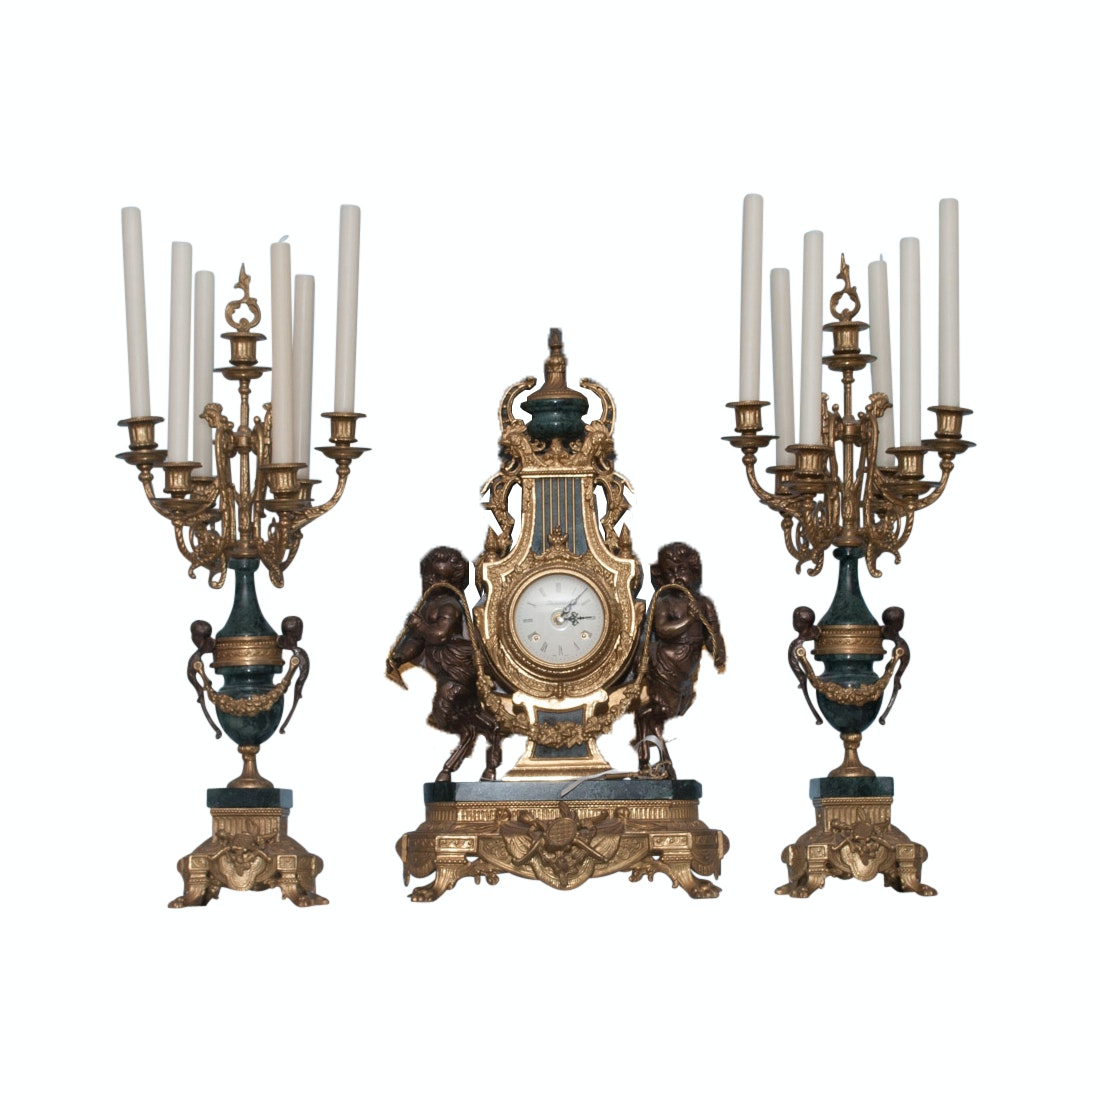 Imperial Rococo-Style Clock and Candelabra Set